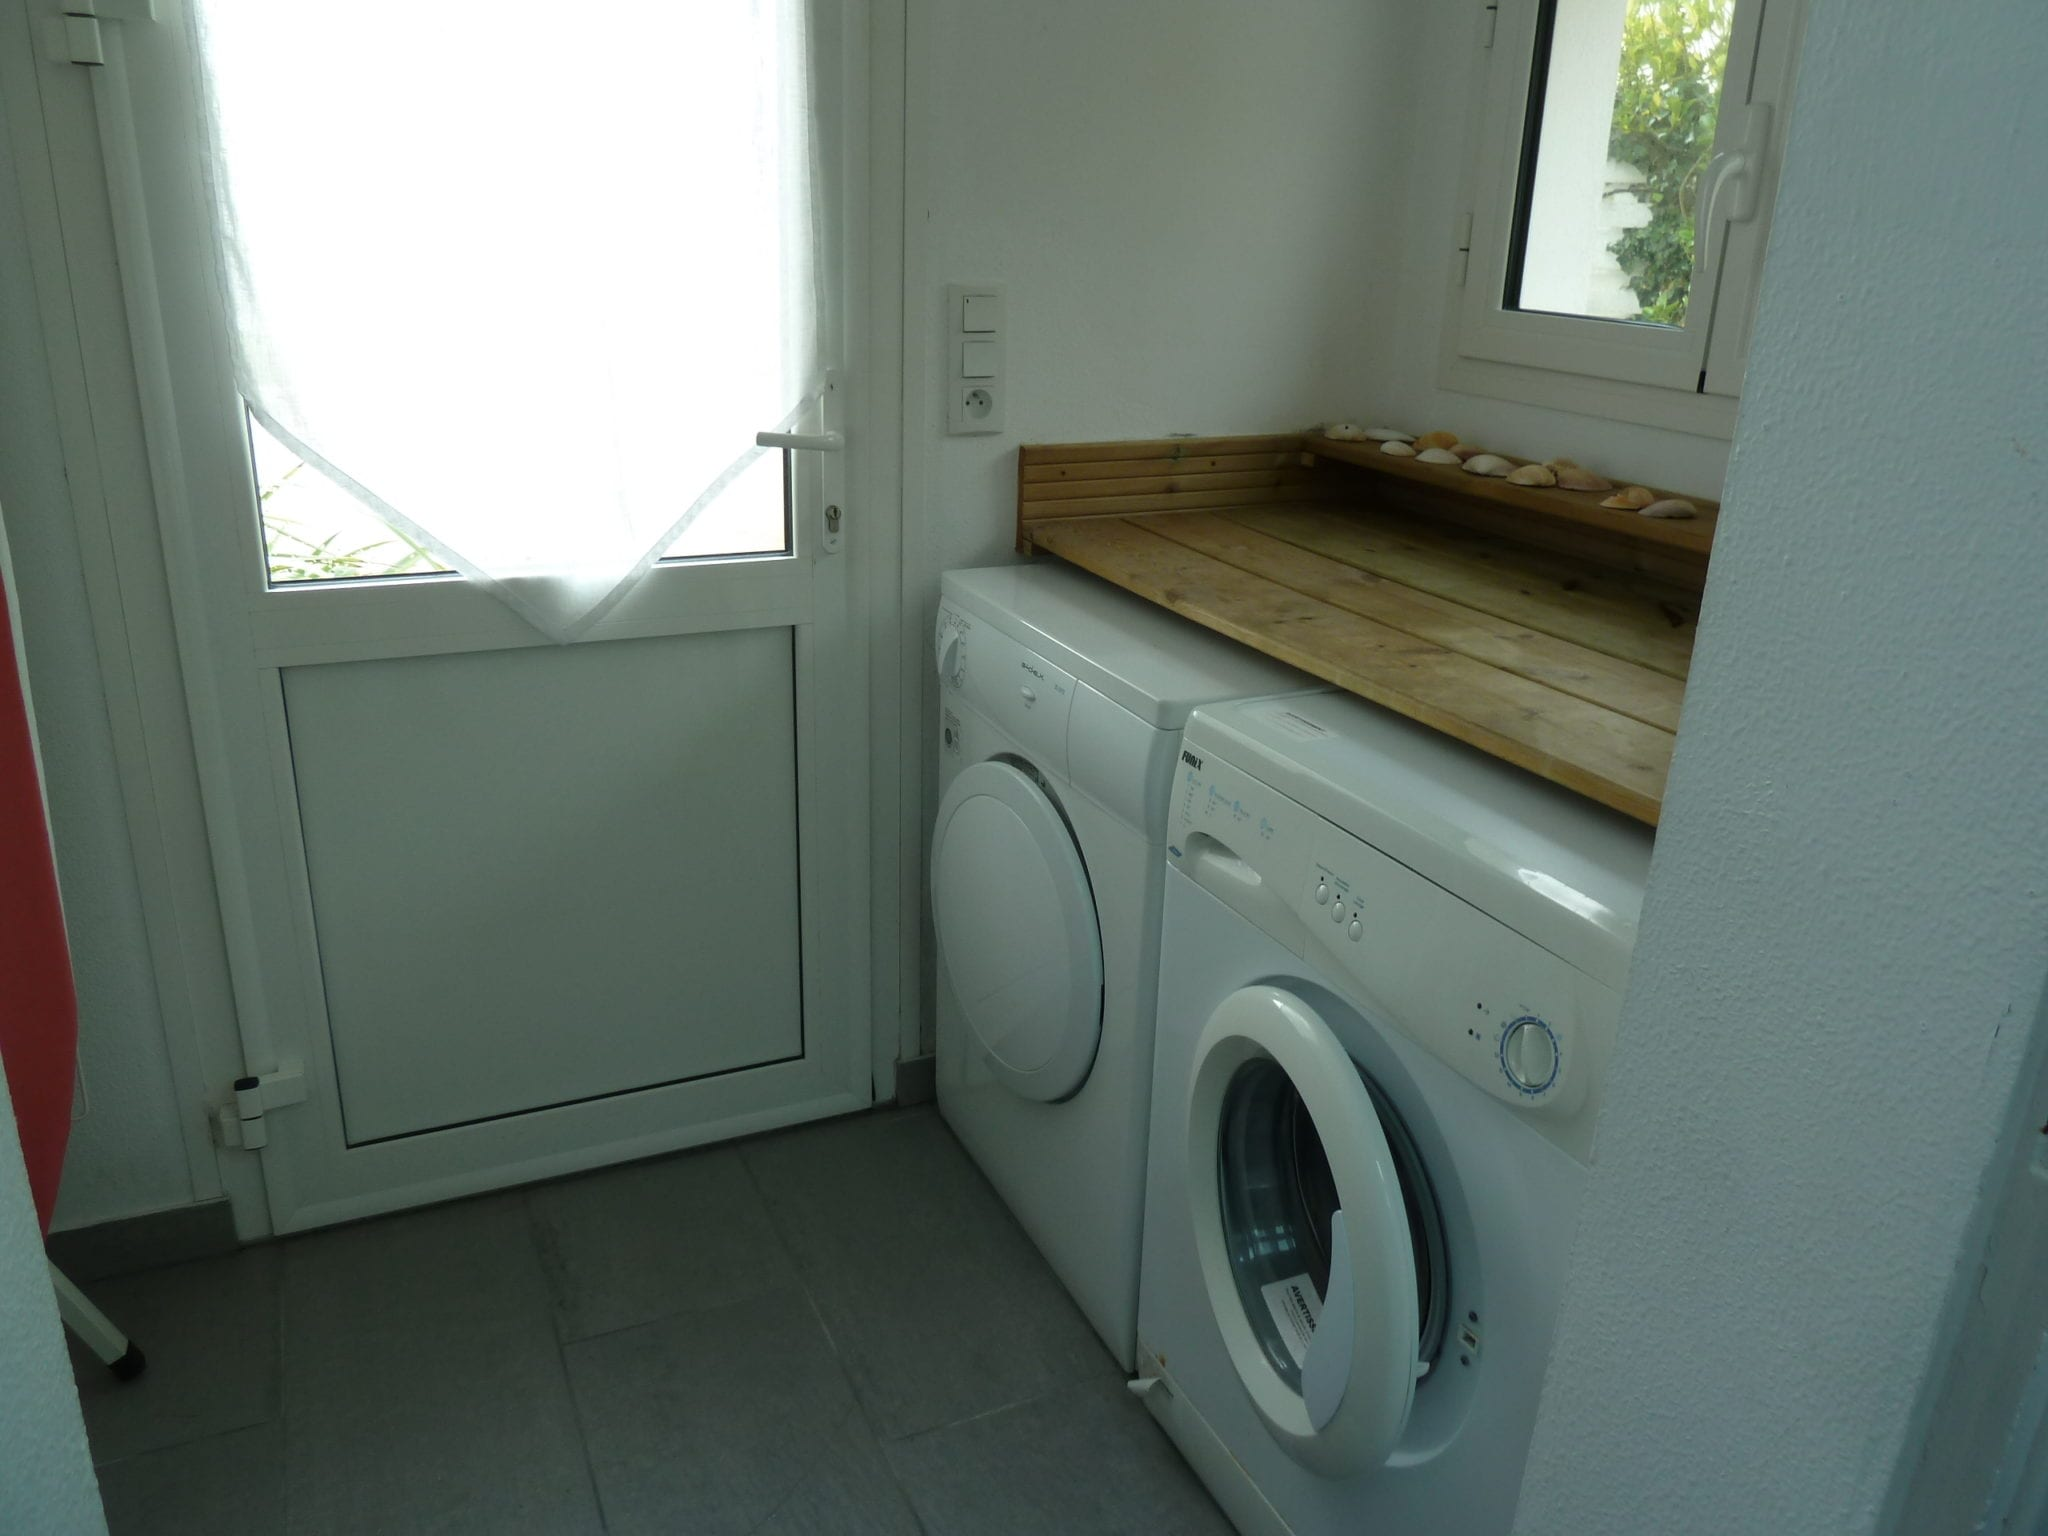 Ile Tudy laundry room